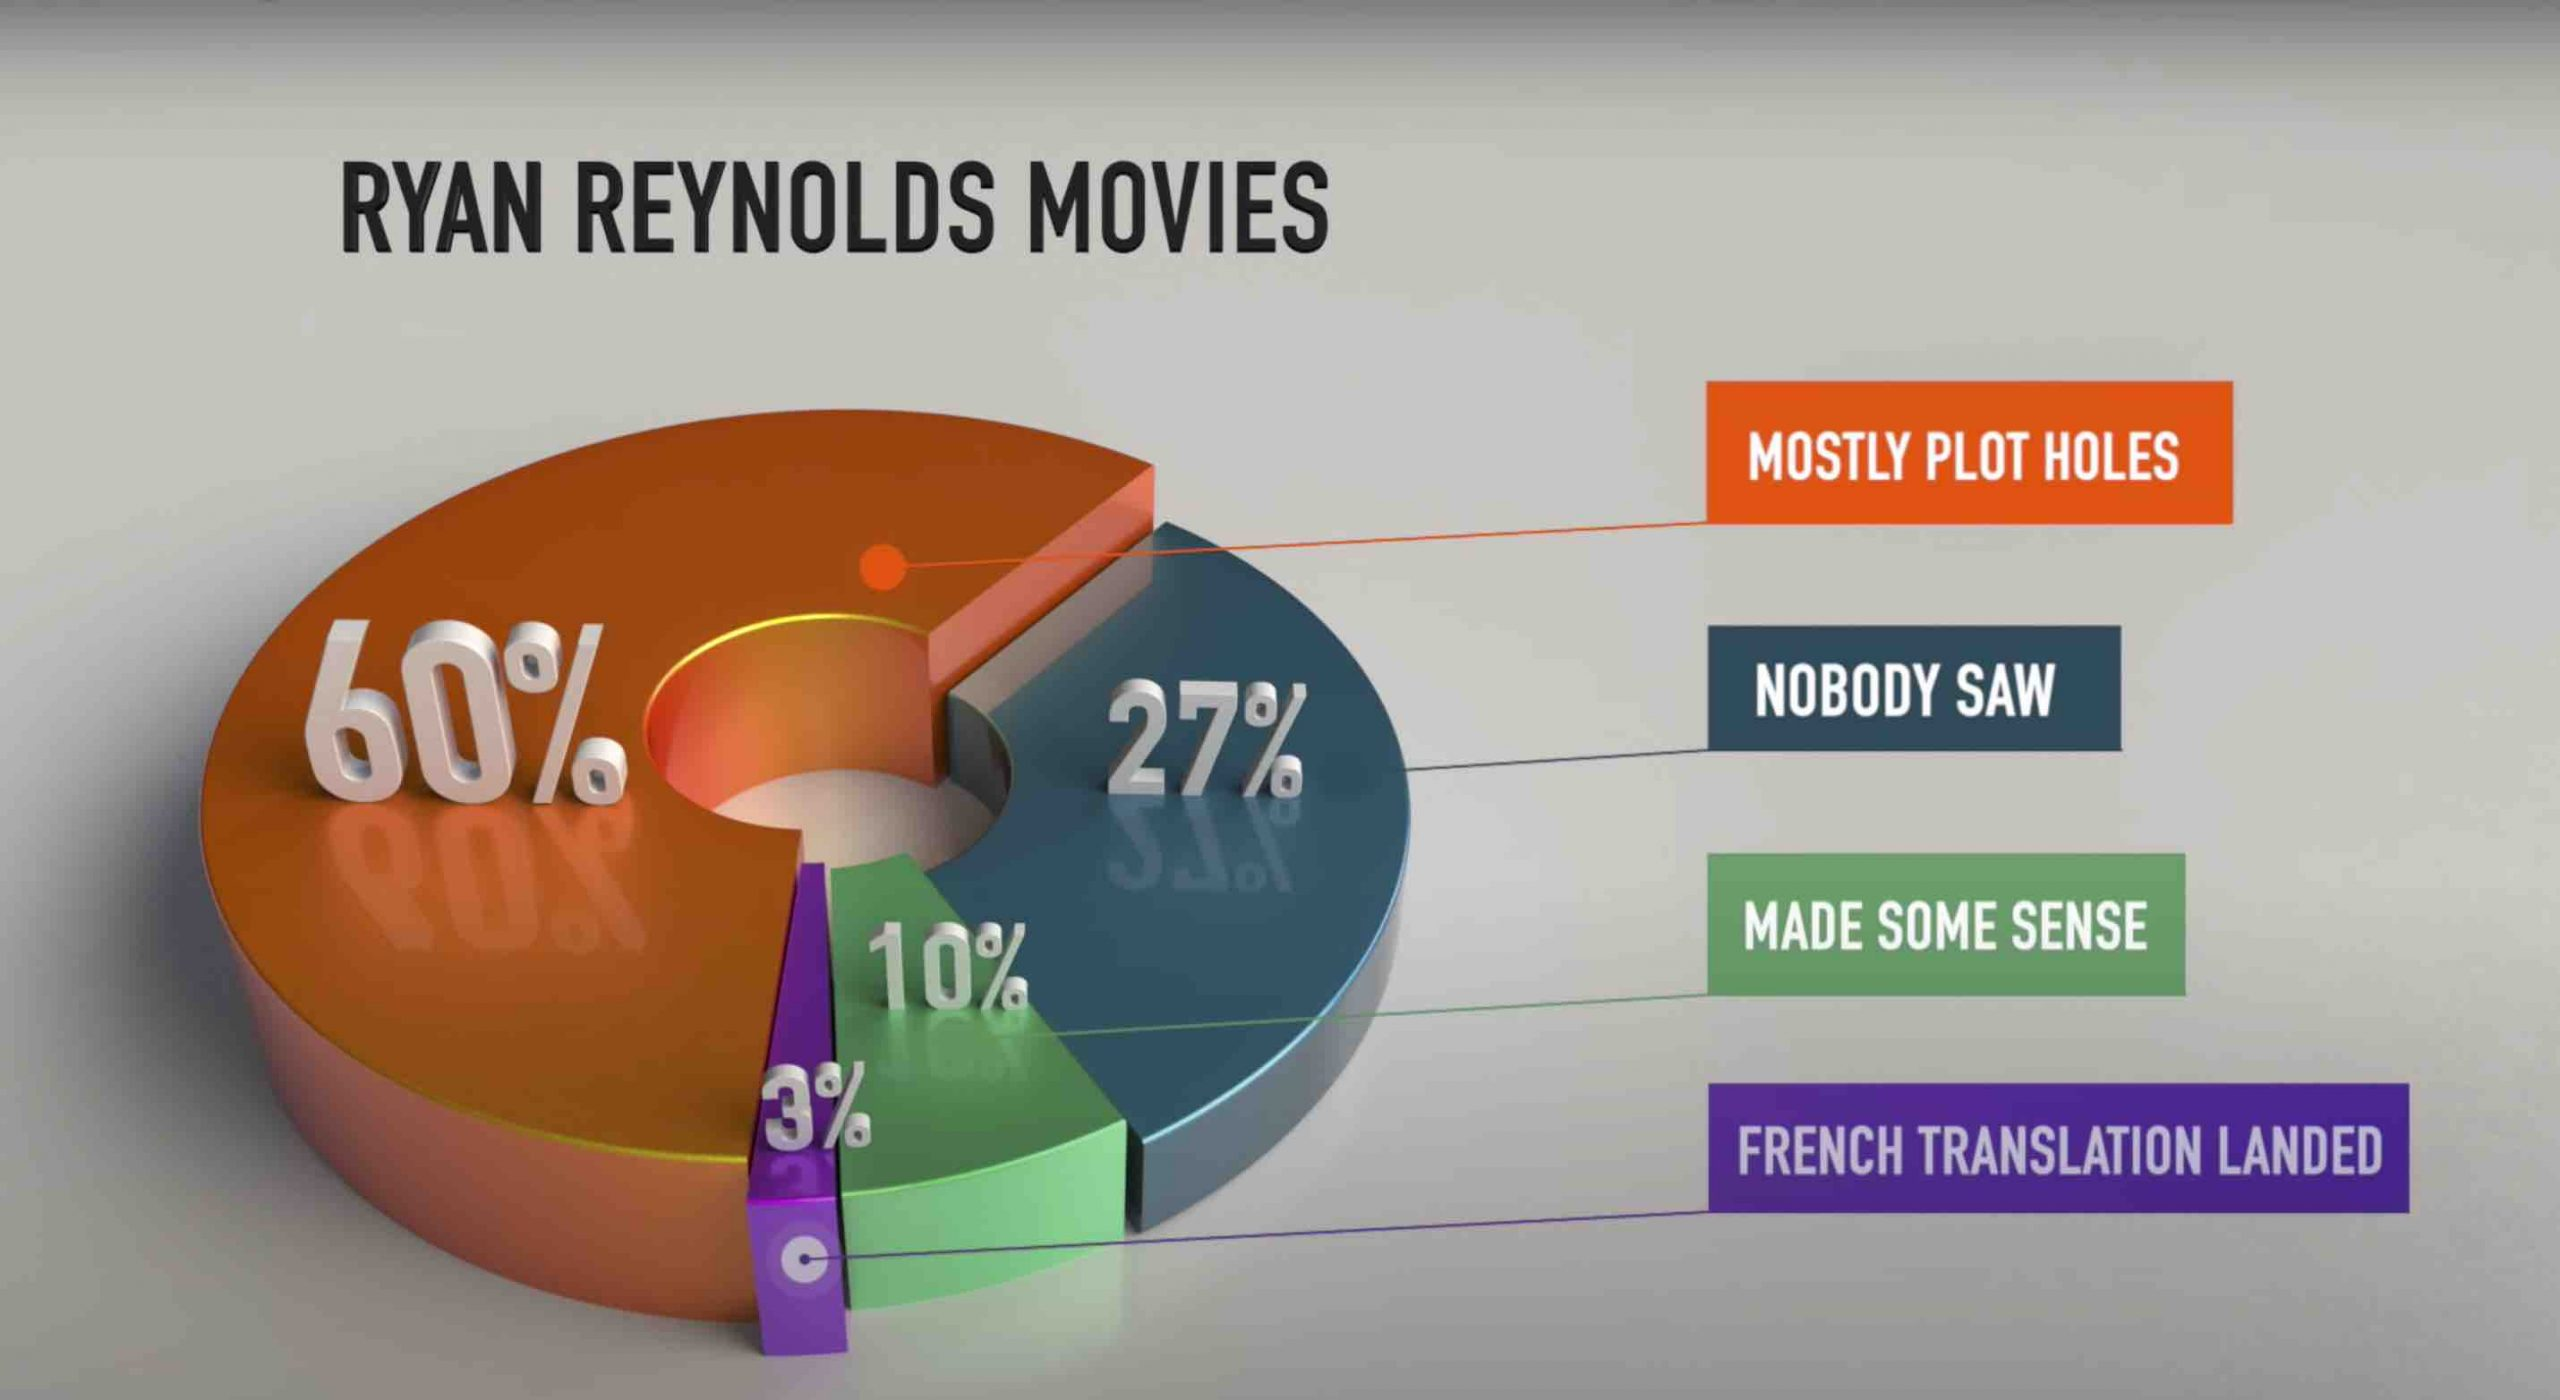 Funny pie chart from Mint Mobile's new funny advert starring Ryan Reynolds.